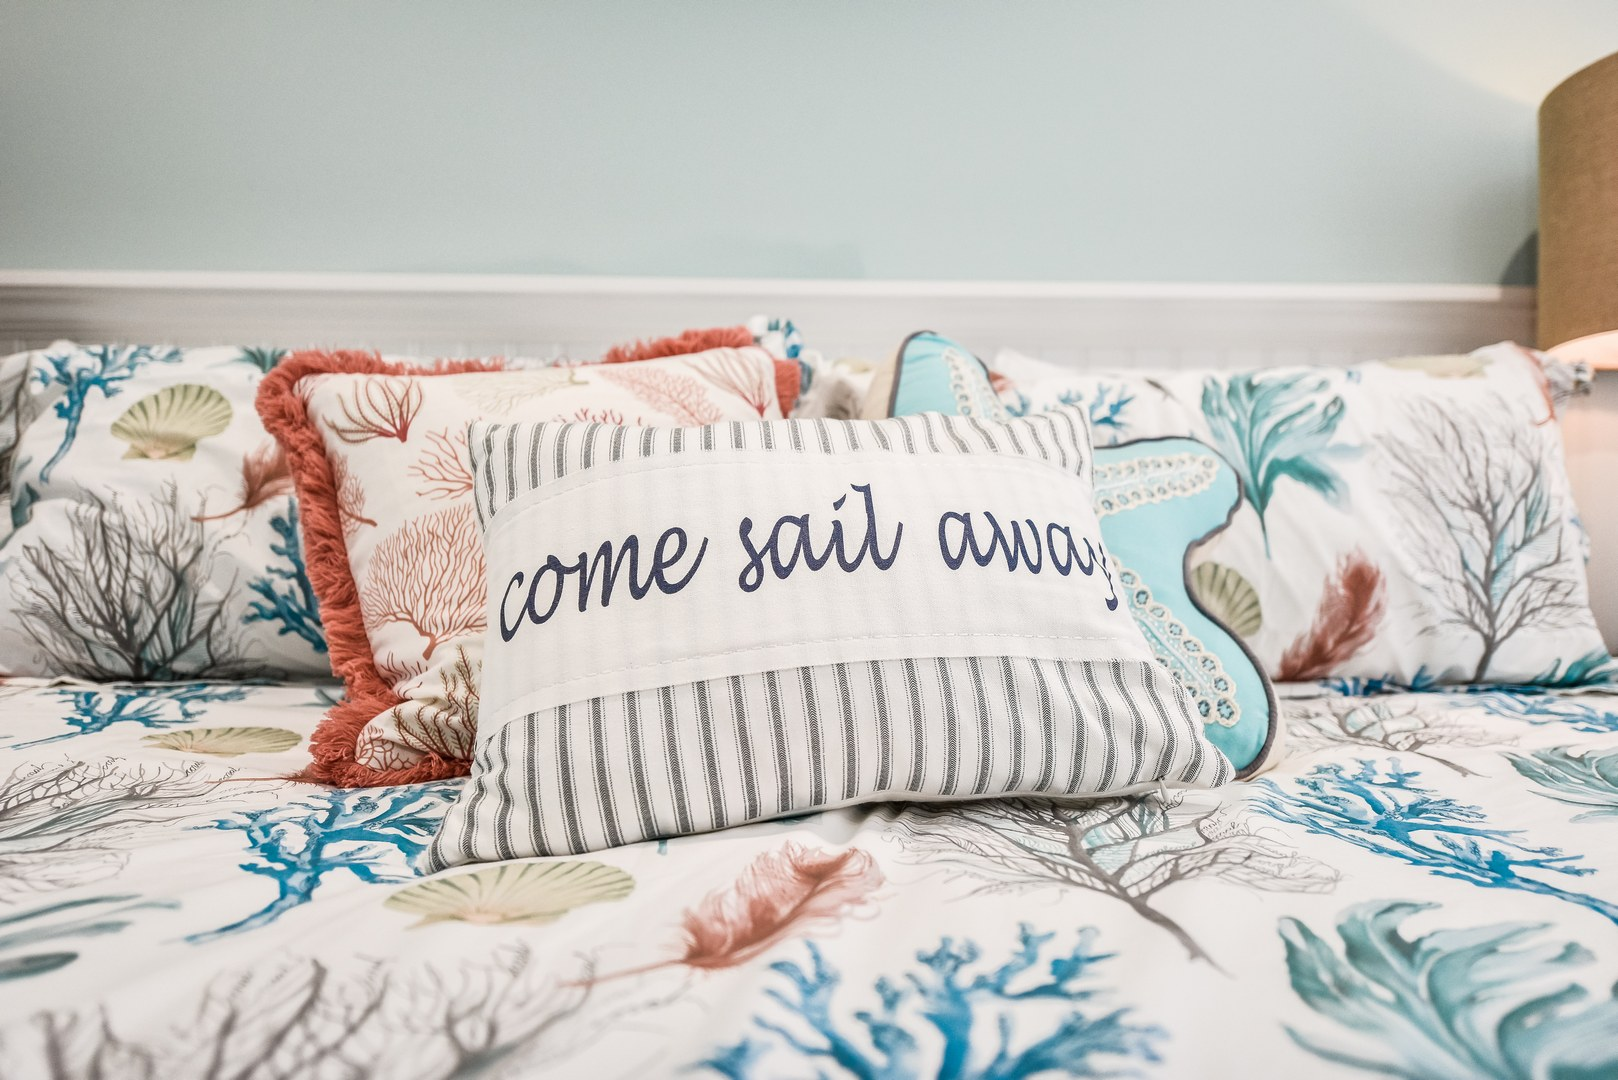 Drift Away on these high end linens and comforters